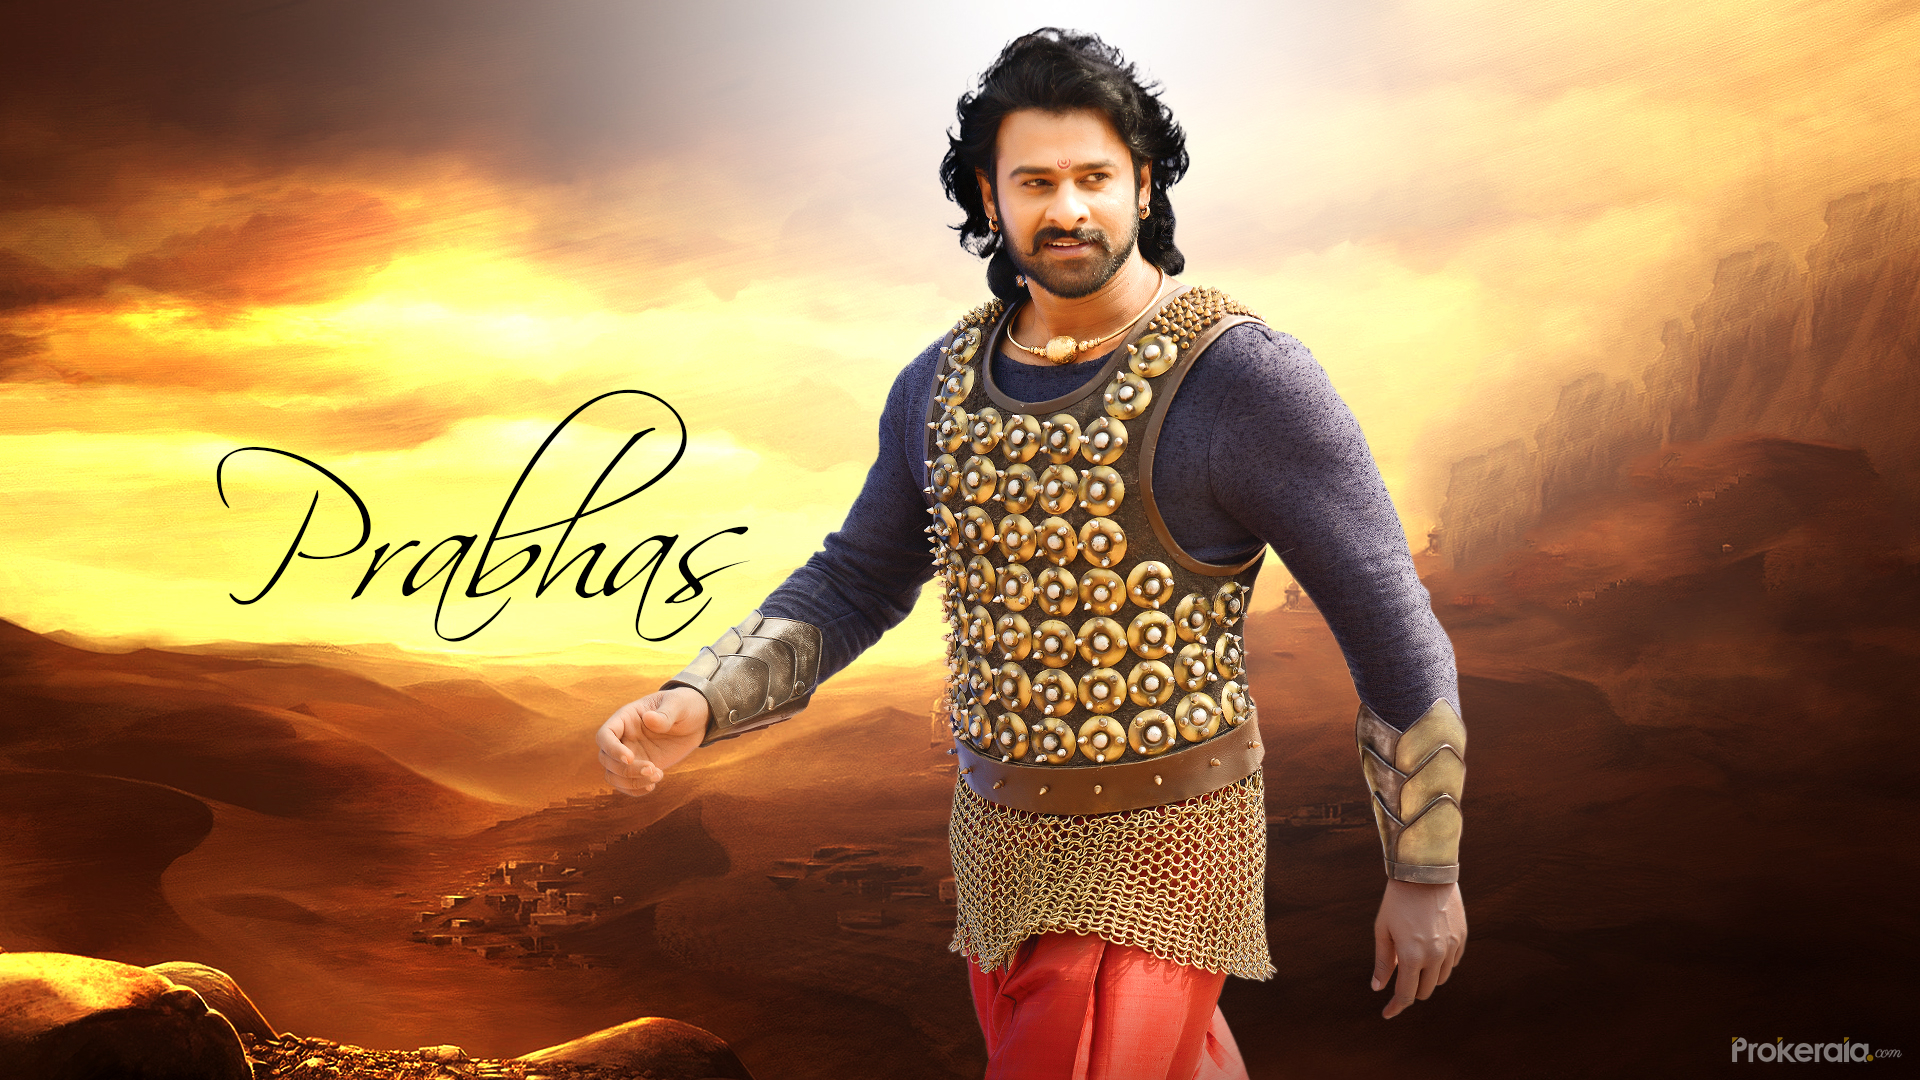 Prabhas Wallpaper